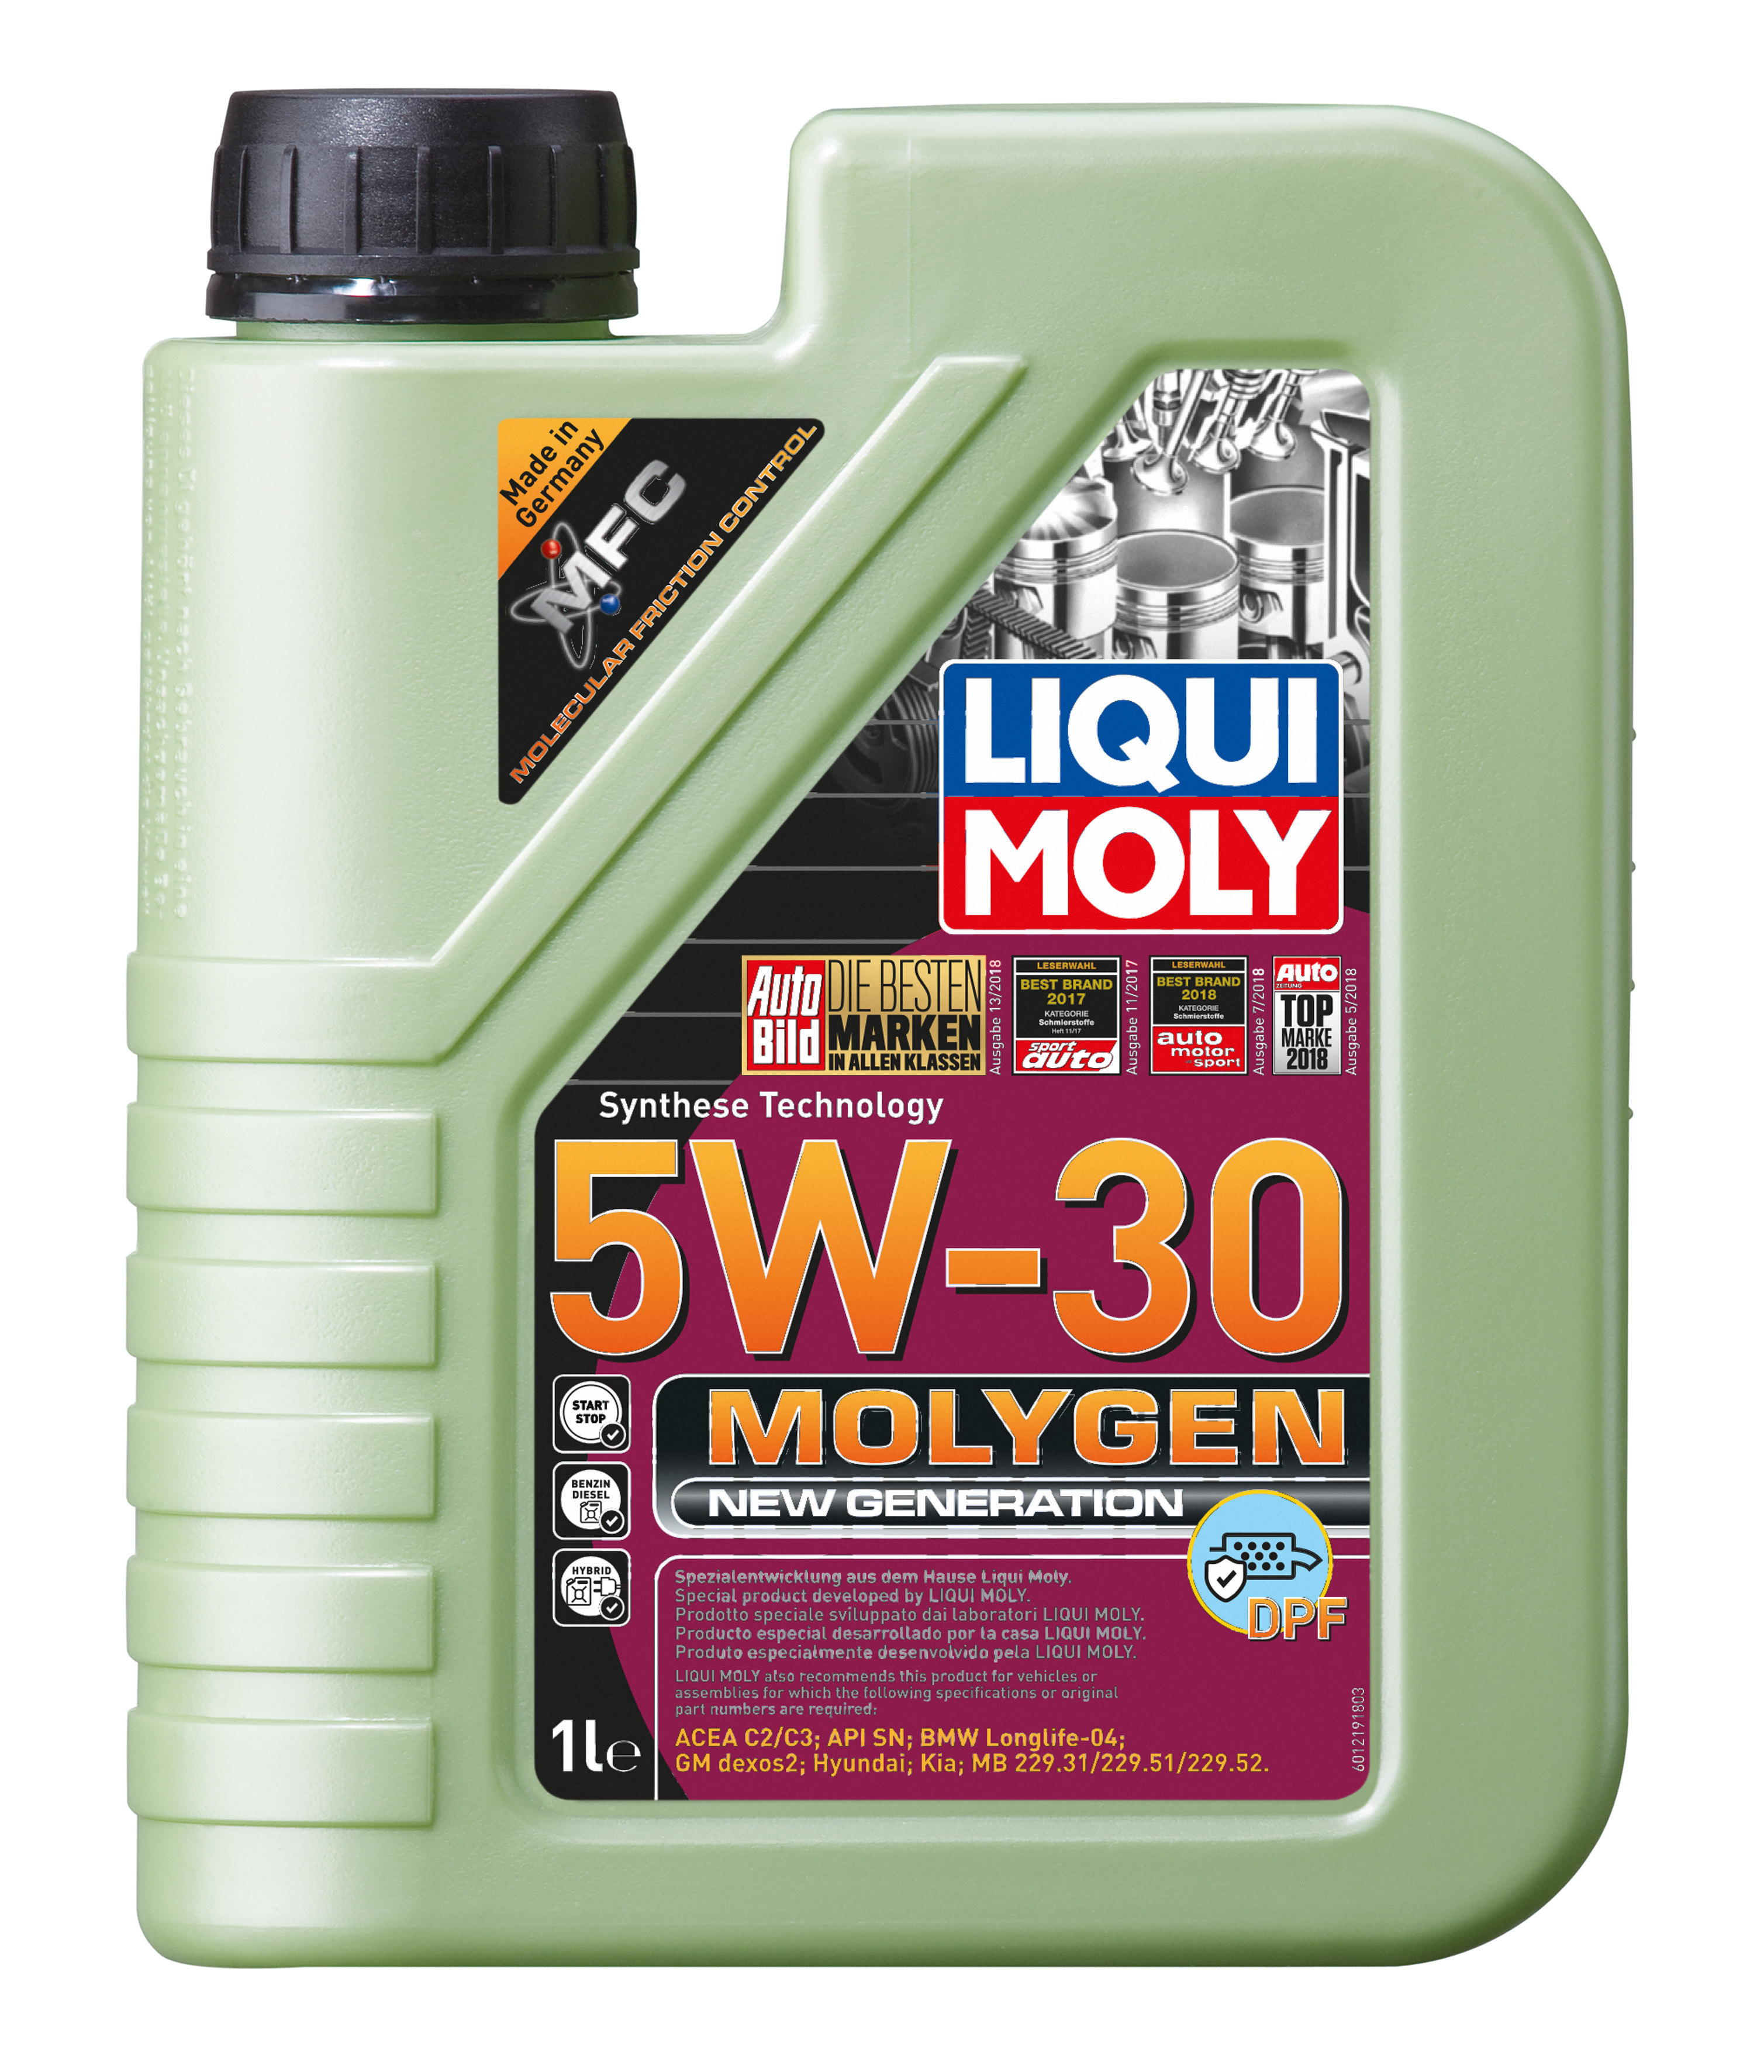 ACEITE MOLYGEN 5W30 DPF New Generation 1L